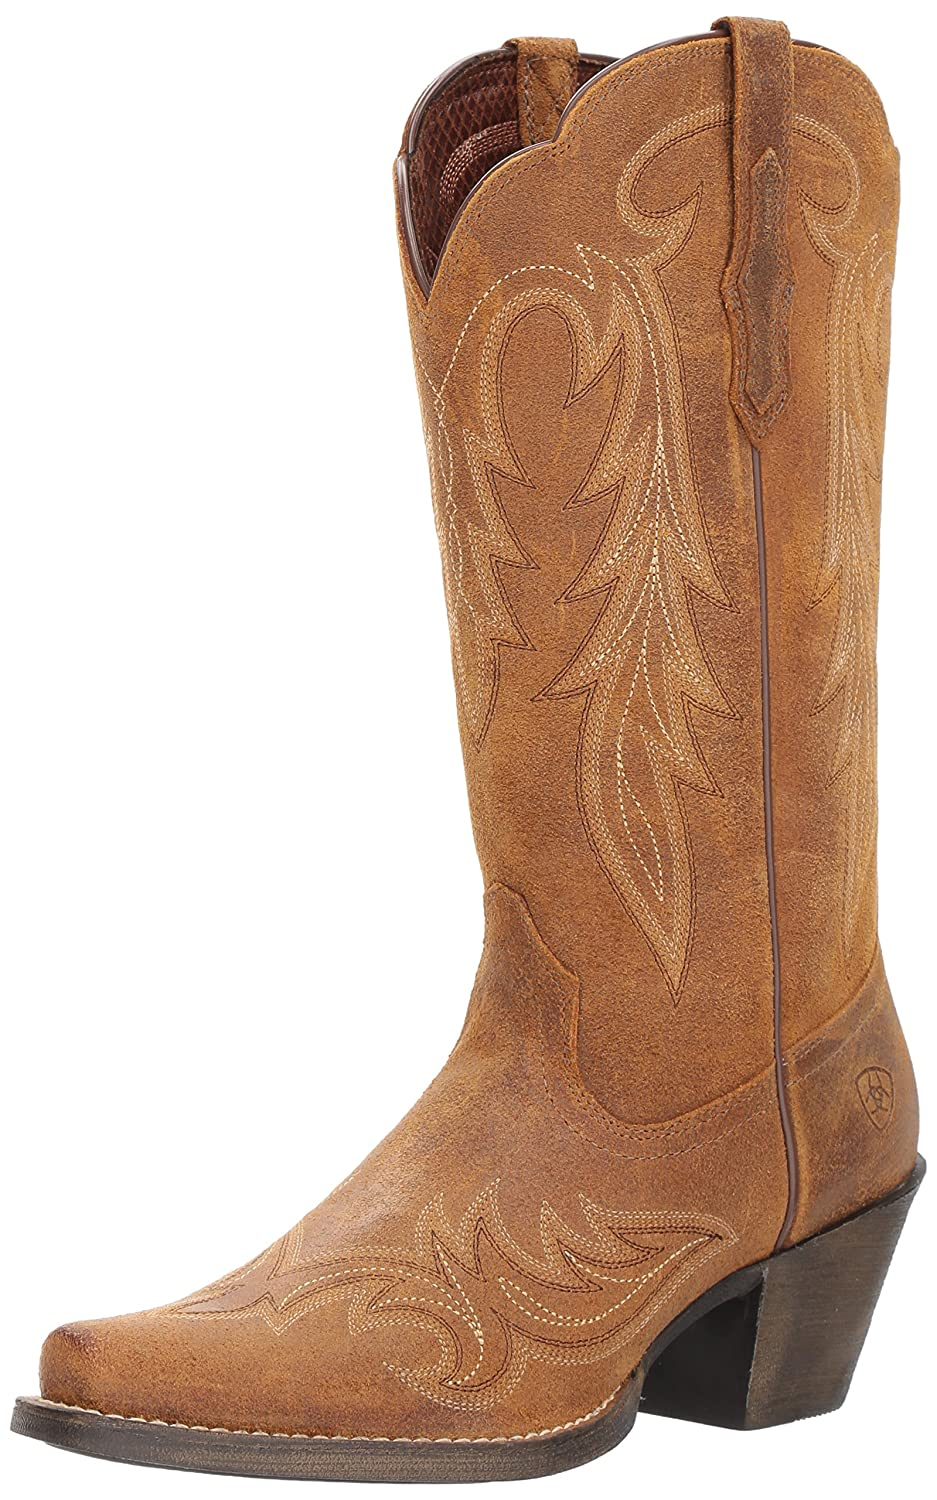 Ariat レディース Round Up Renegade B01N9X7C14 6 B(M) US|Old West Tan Old West Tan 6 B(M) US